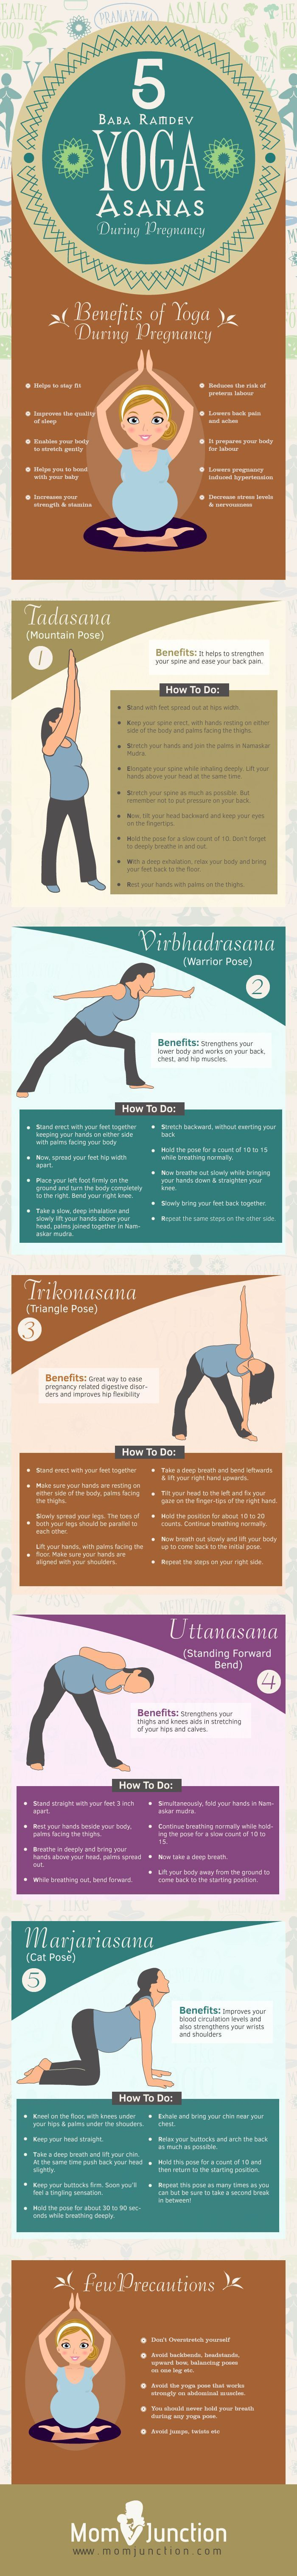 Baba Ramdev Yoga Asanas For Pregnant Women: Regular exercise is important, even for pregnant women. And the best you can do for your changing body is try doing few prenatal yoga asanas! If you want to try prenatal yoga poses, Baba Ramdev yoga for #pregnancy can help you!